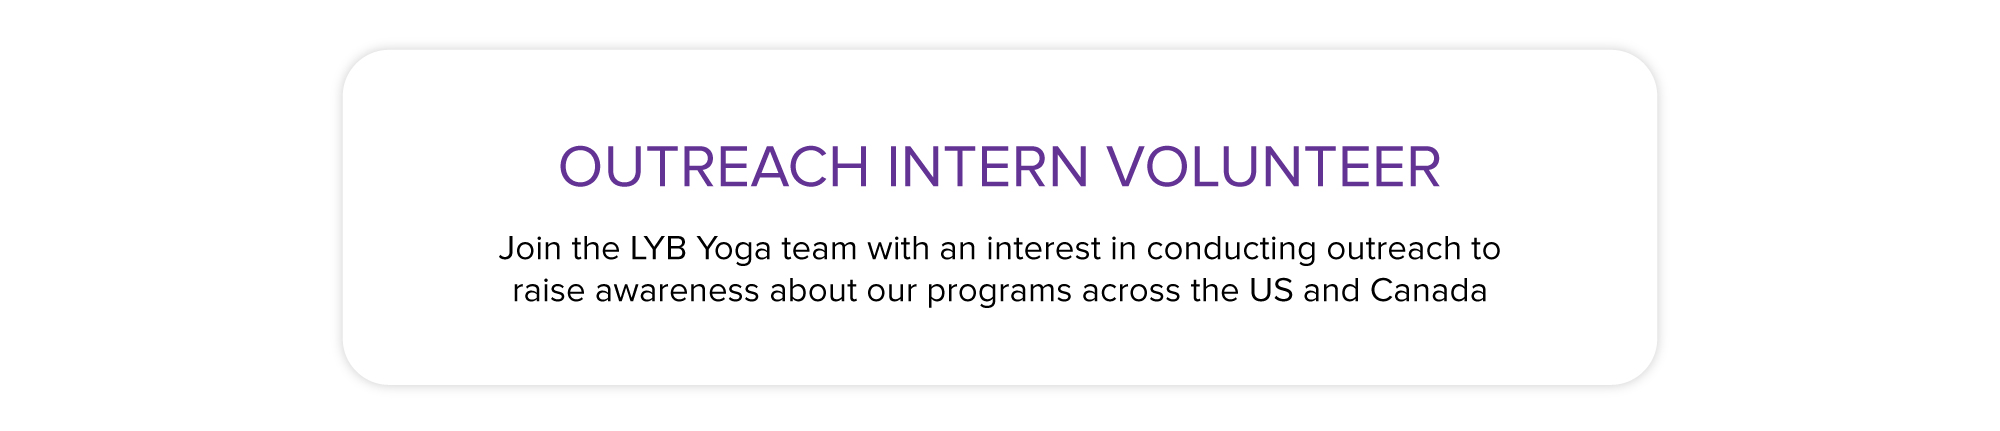 Outreach-Intern-Volunteer.jpg